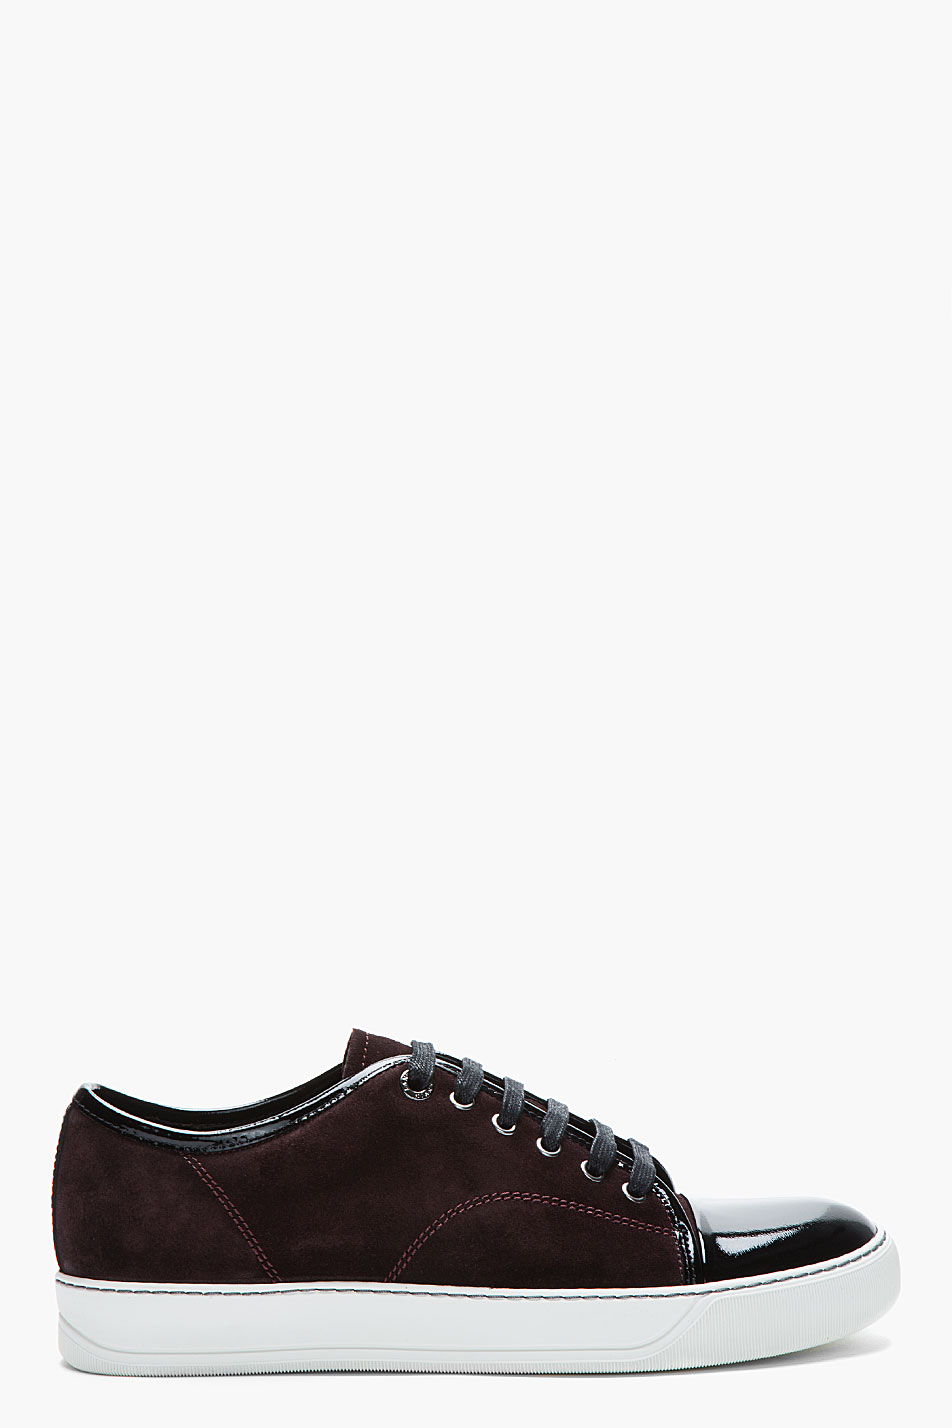 Lanvin Burgundy Patent And Suede Tennis Shoes In Red For